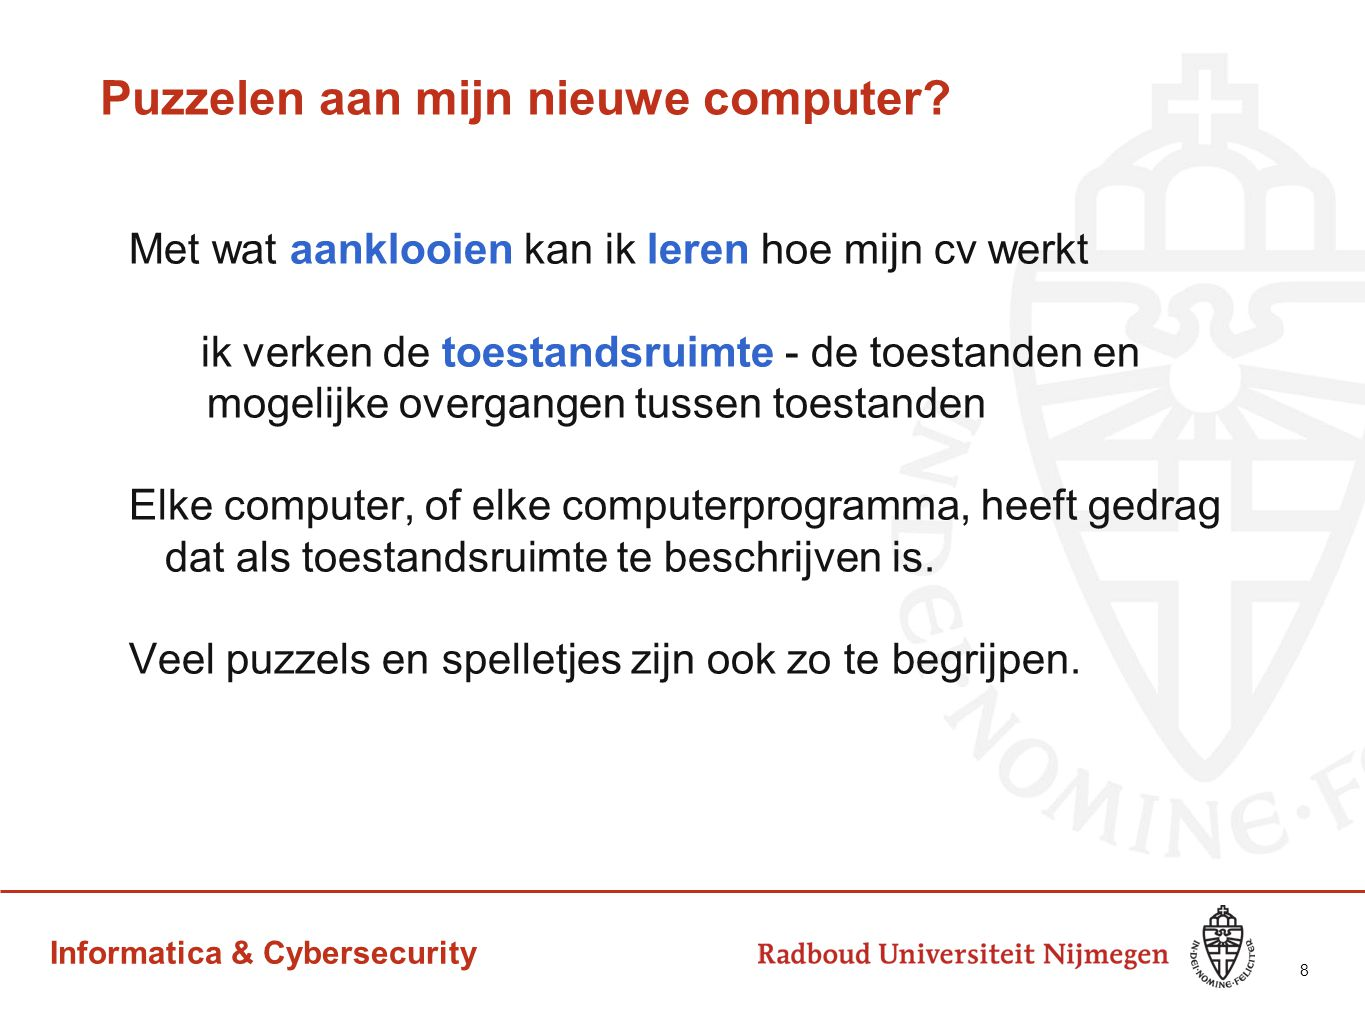 Informatica & Cybersecurity 9